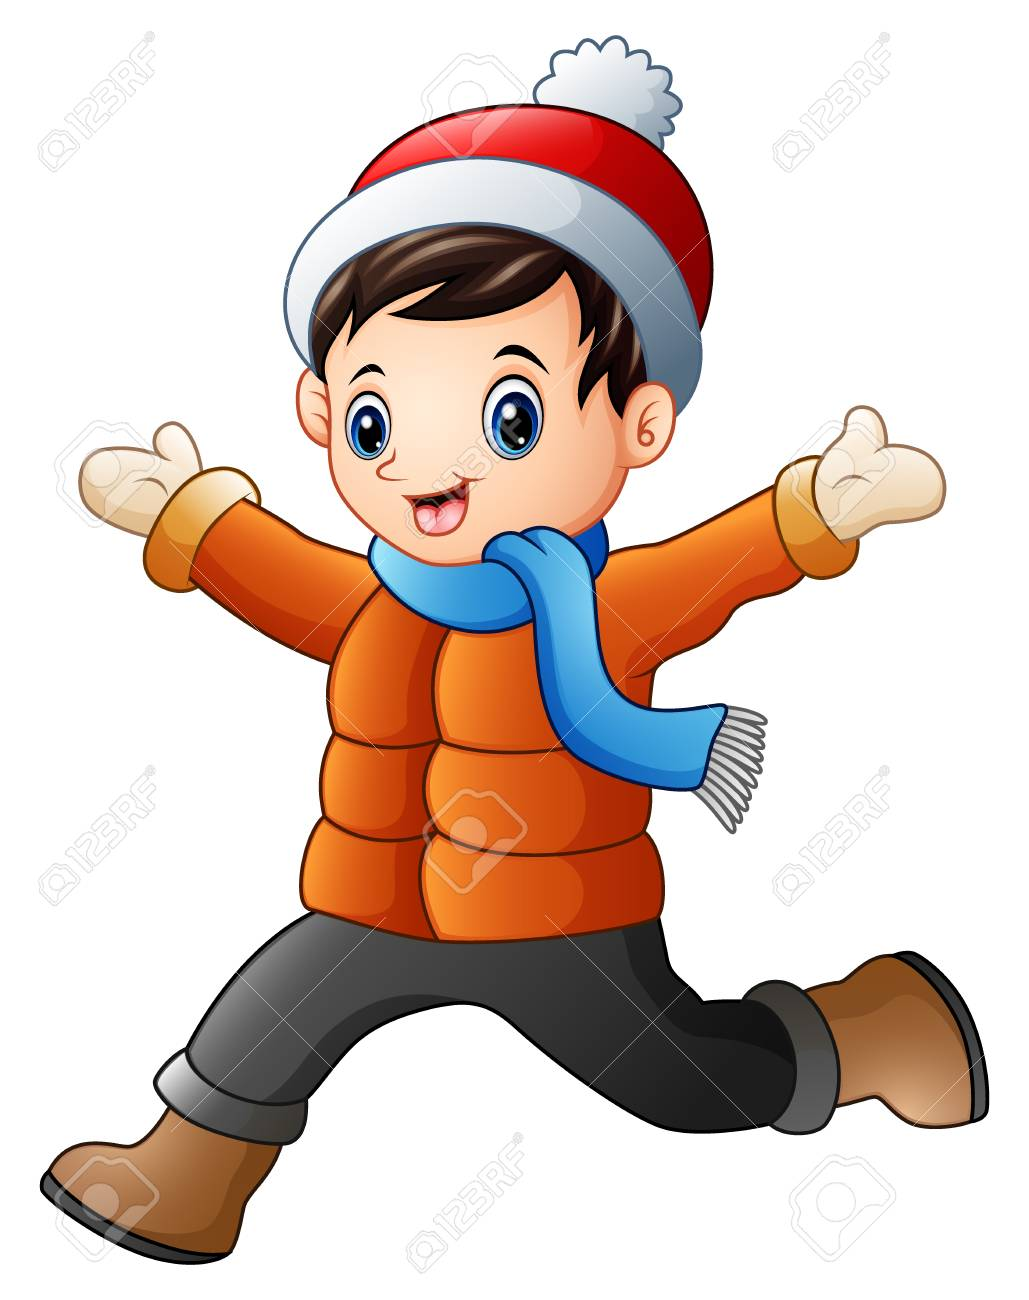 Vector illustration of Cartoon boy wearing winter clothes.